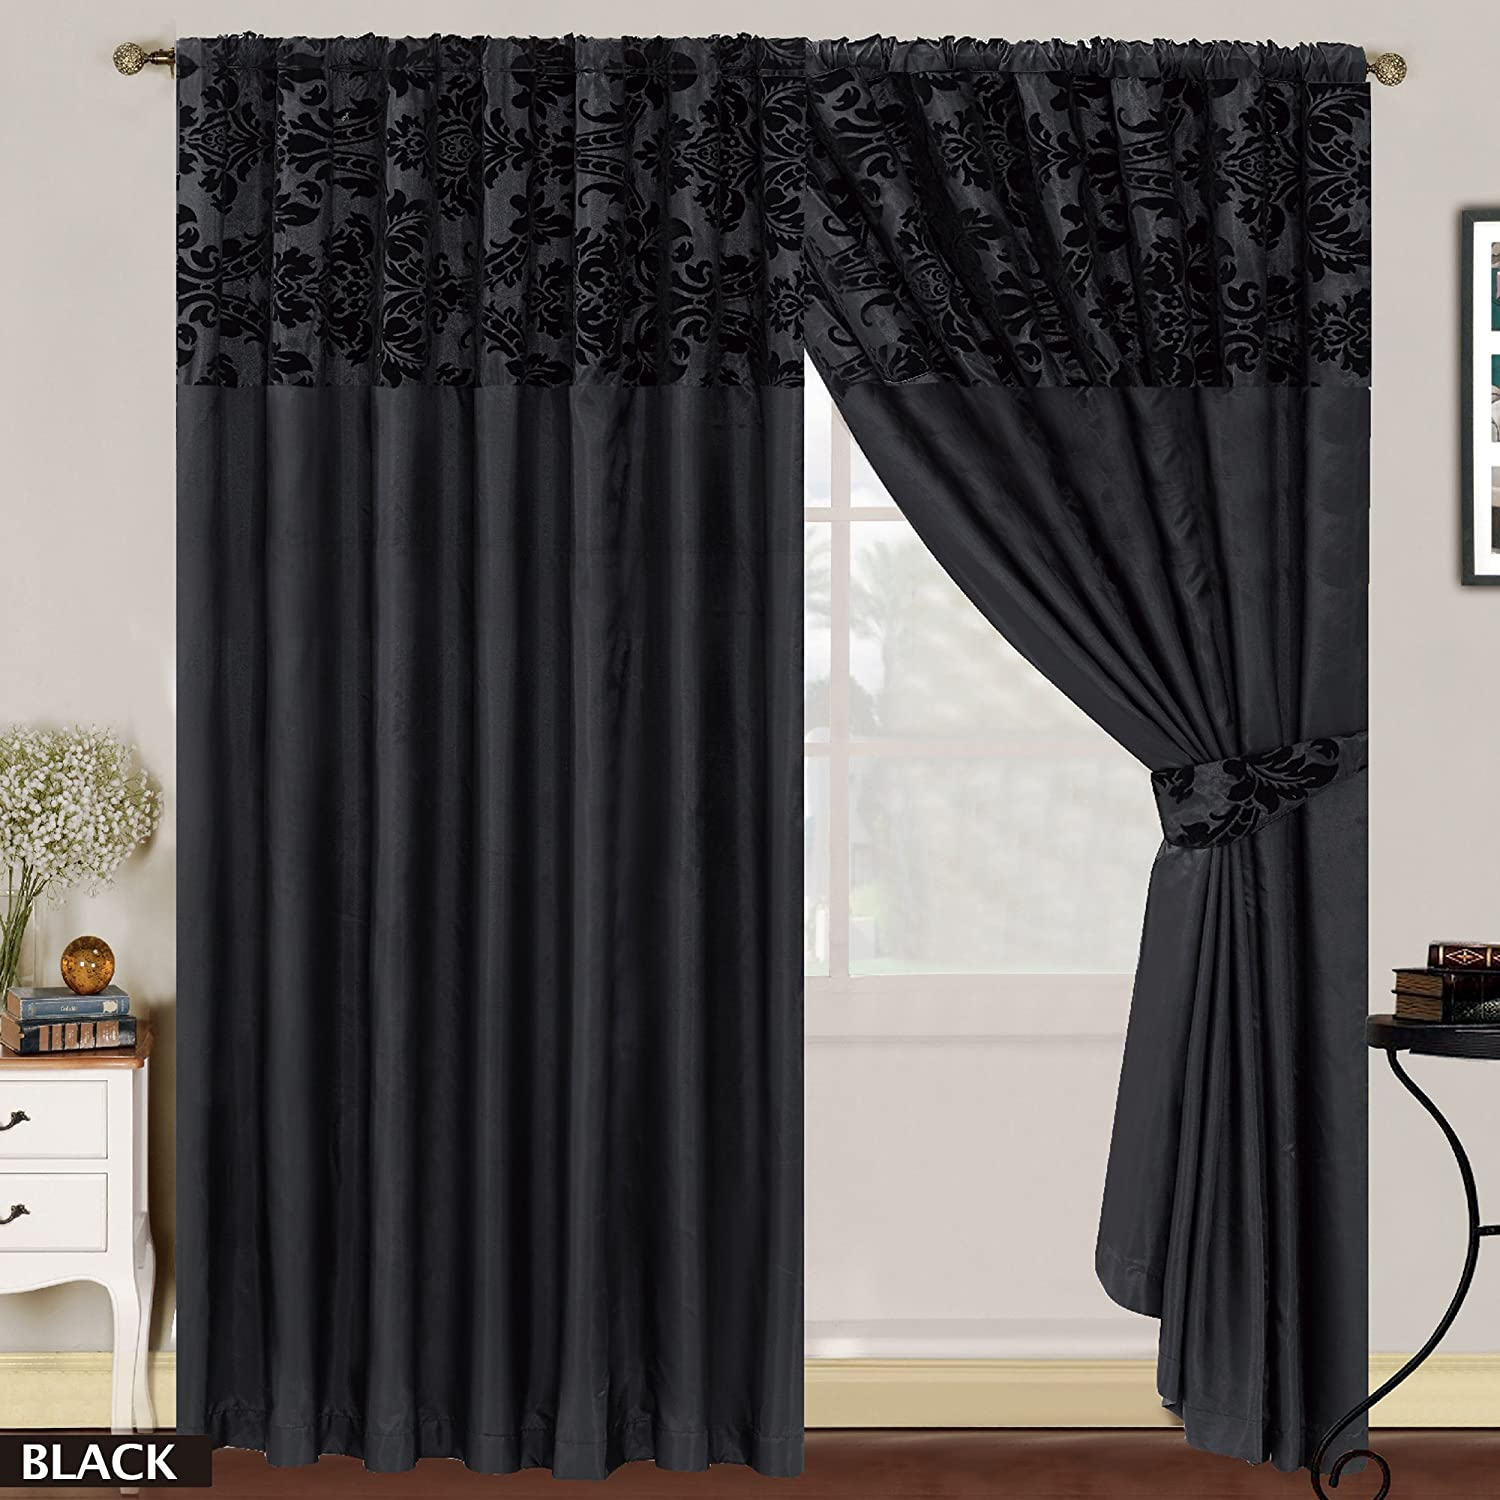 Black Curtains Part - 41: LUXURY Damask Curtains Pair Of Half Flock Pencil Pleat Window Curtain  Fusion(TM) (90x90, Black) By Fusion: Amazon.co.uk: Kitchen U0026 Home